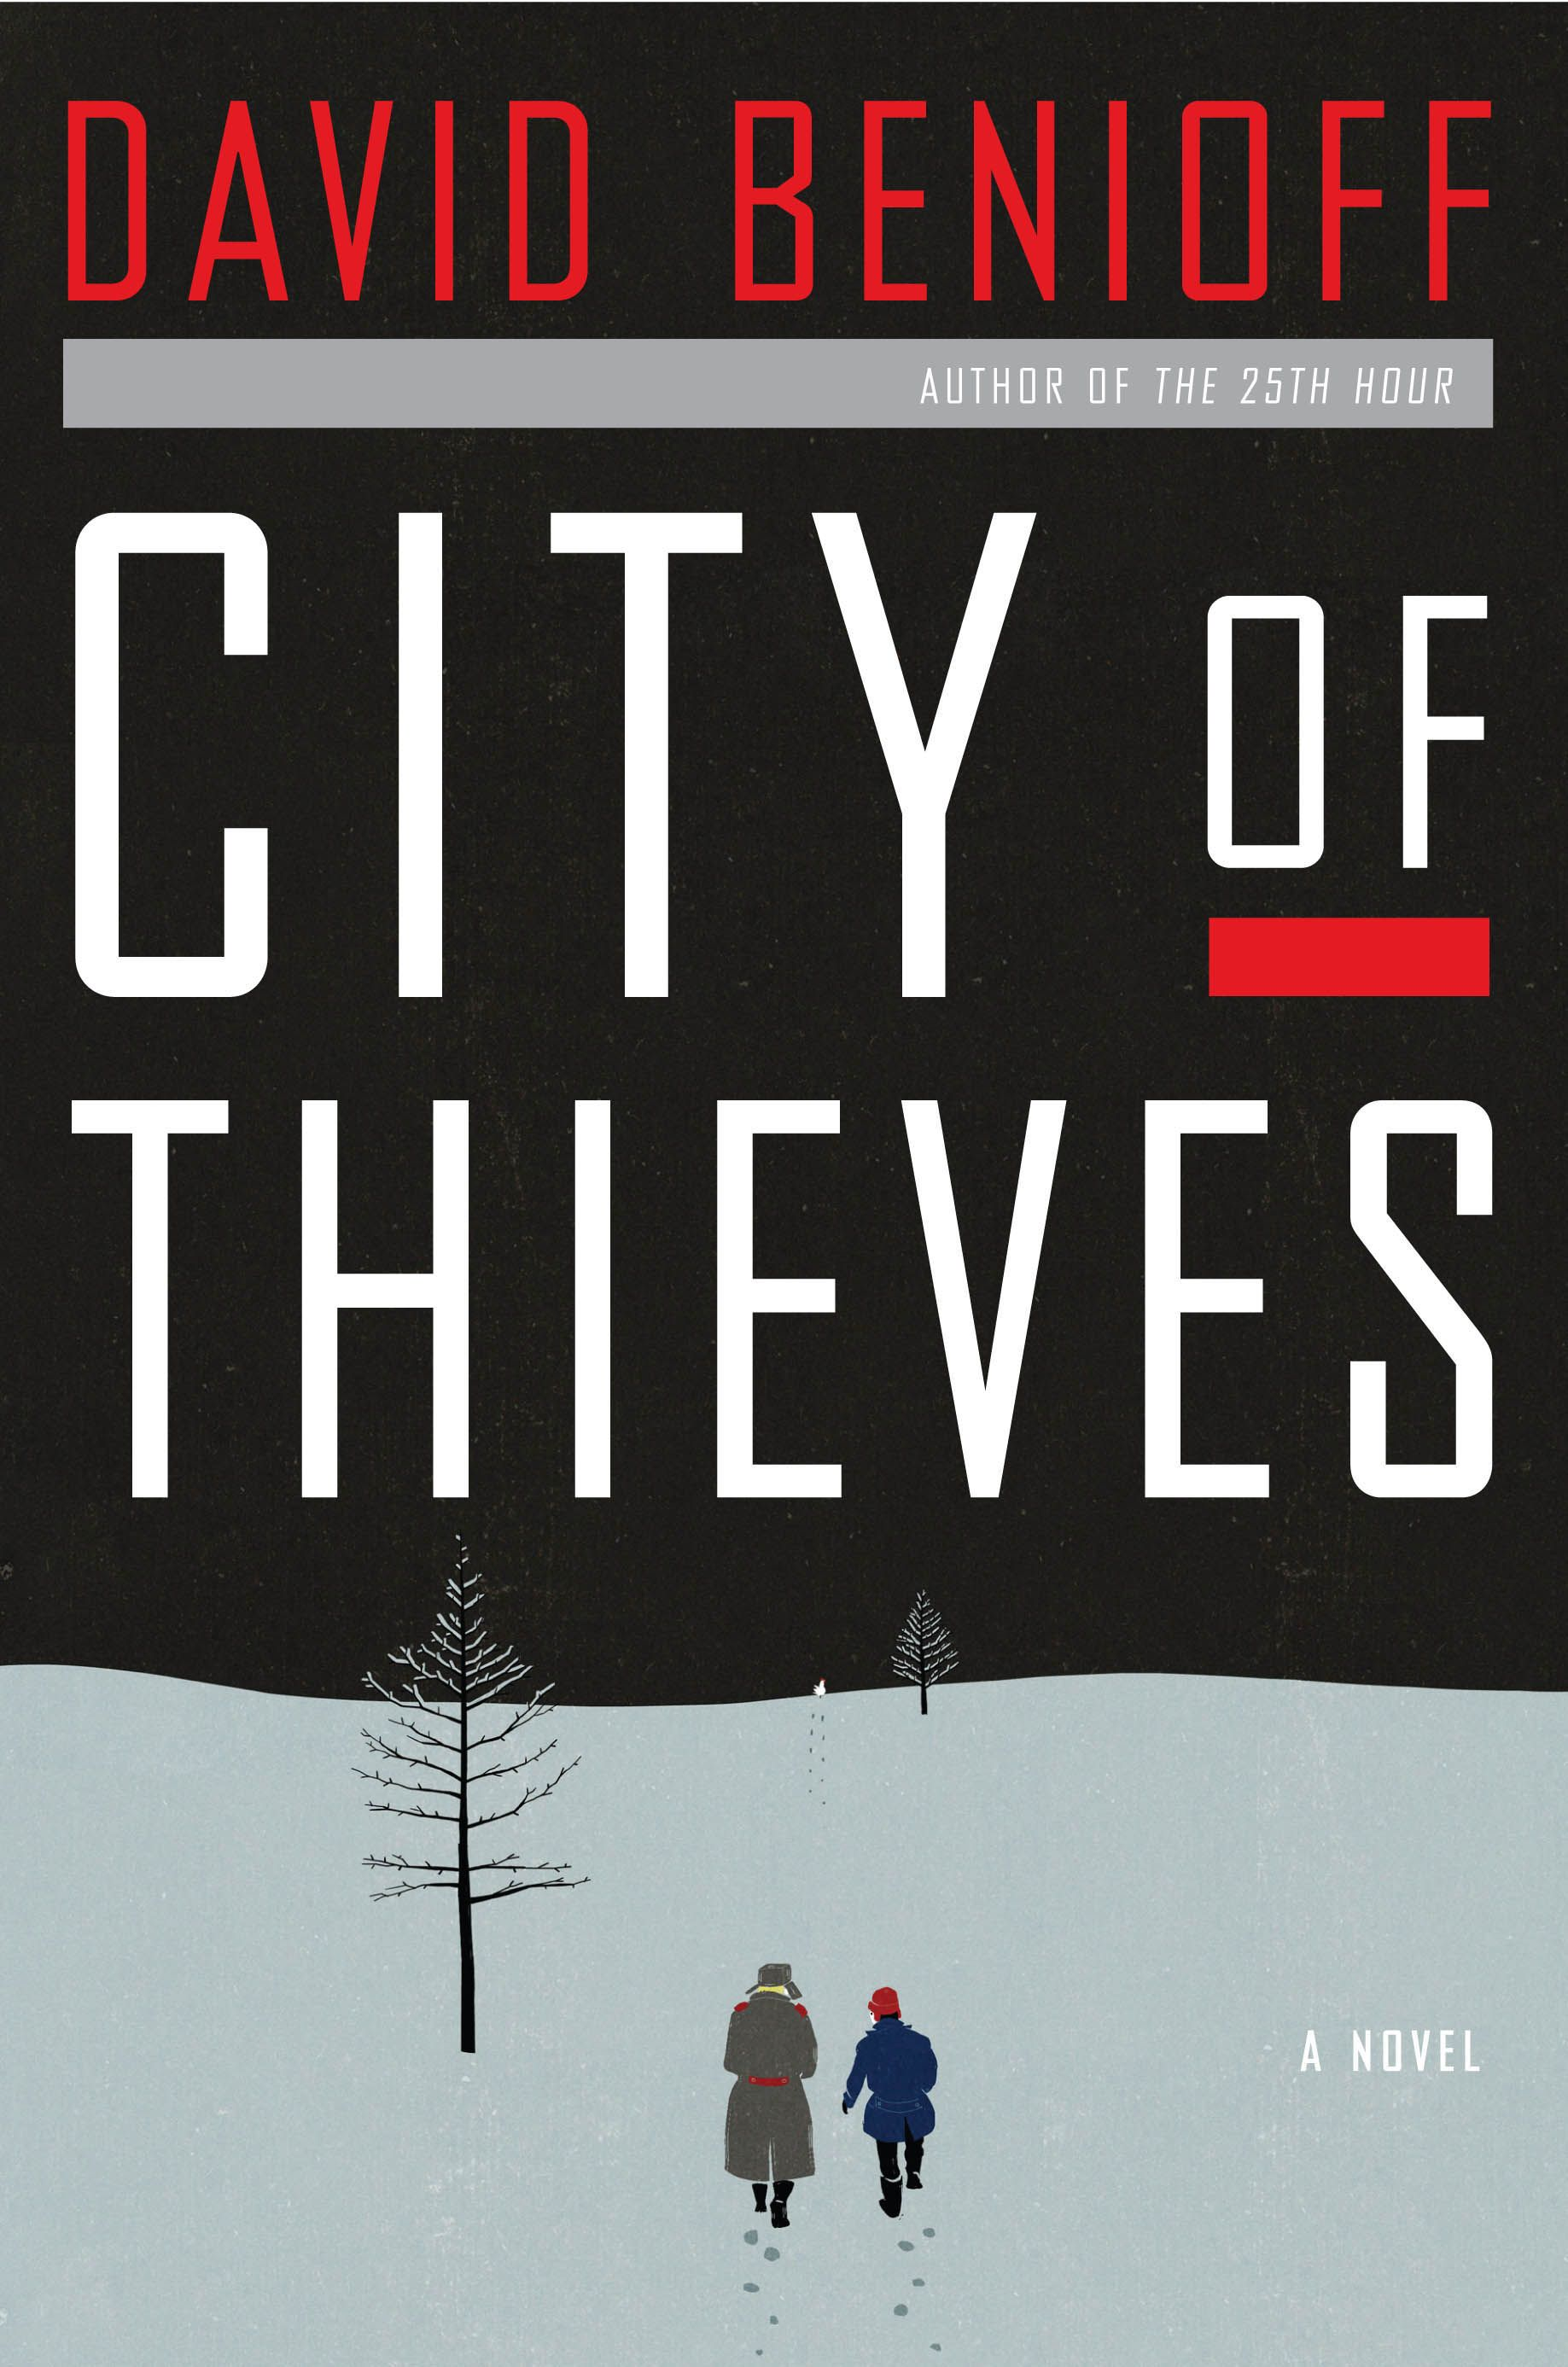 city-of-thieves-book-cover.jpg